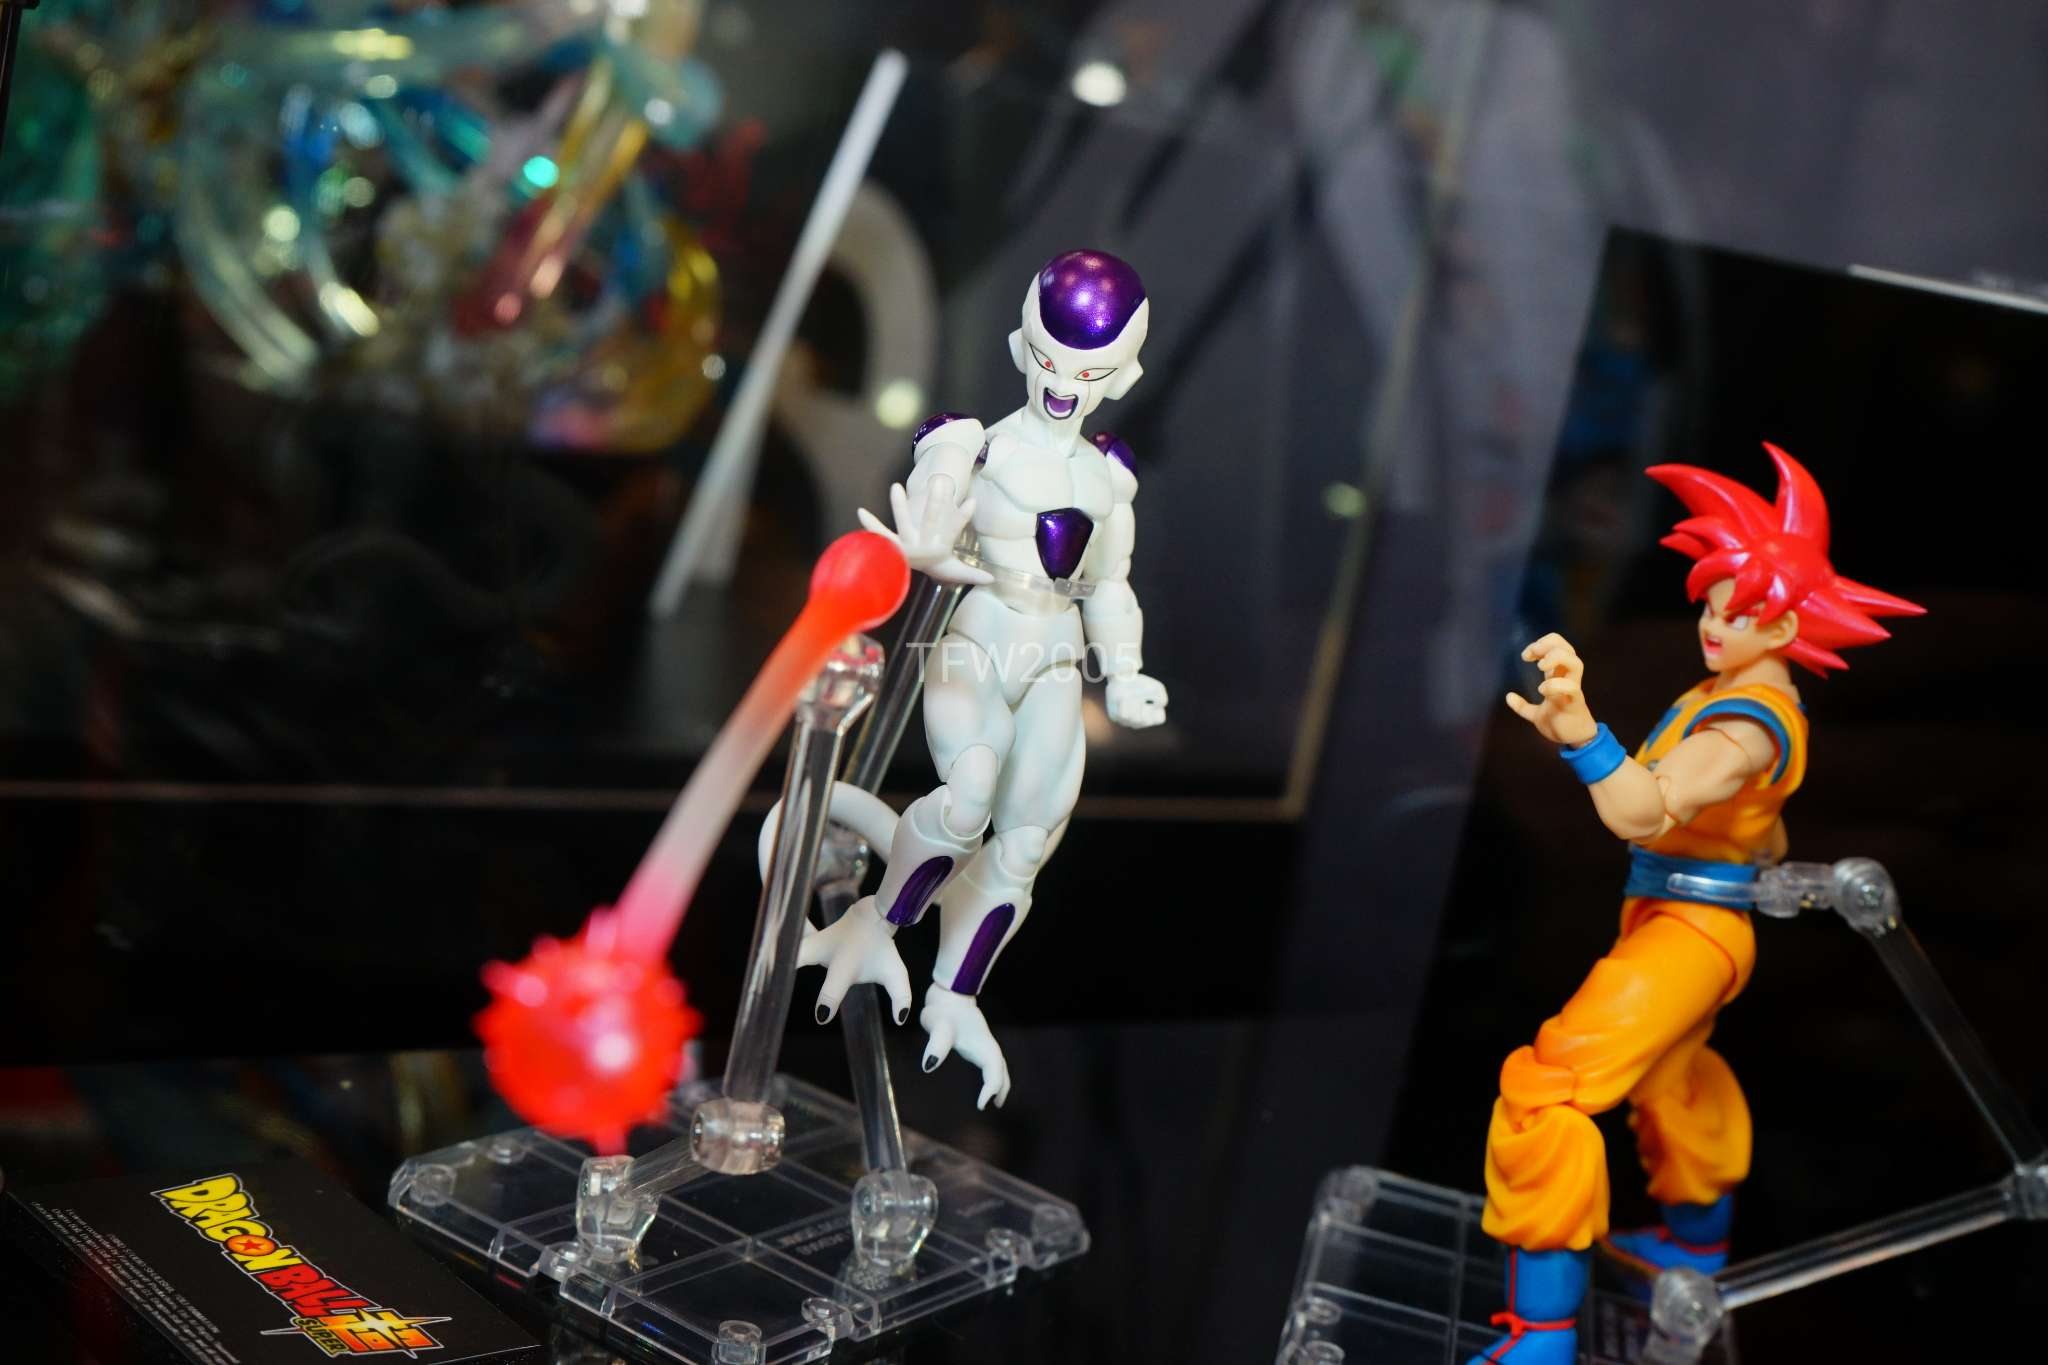 http://news.toyark.com/wp-content/uploads/sites/4/2017/10/NYCC-2017-Tamashii-Nations-DBZ-017.jpg